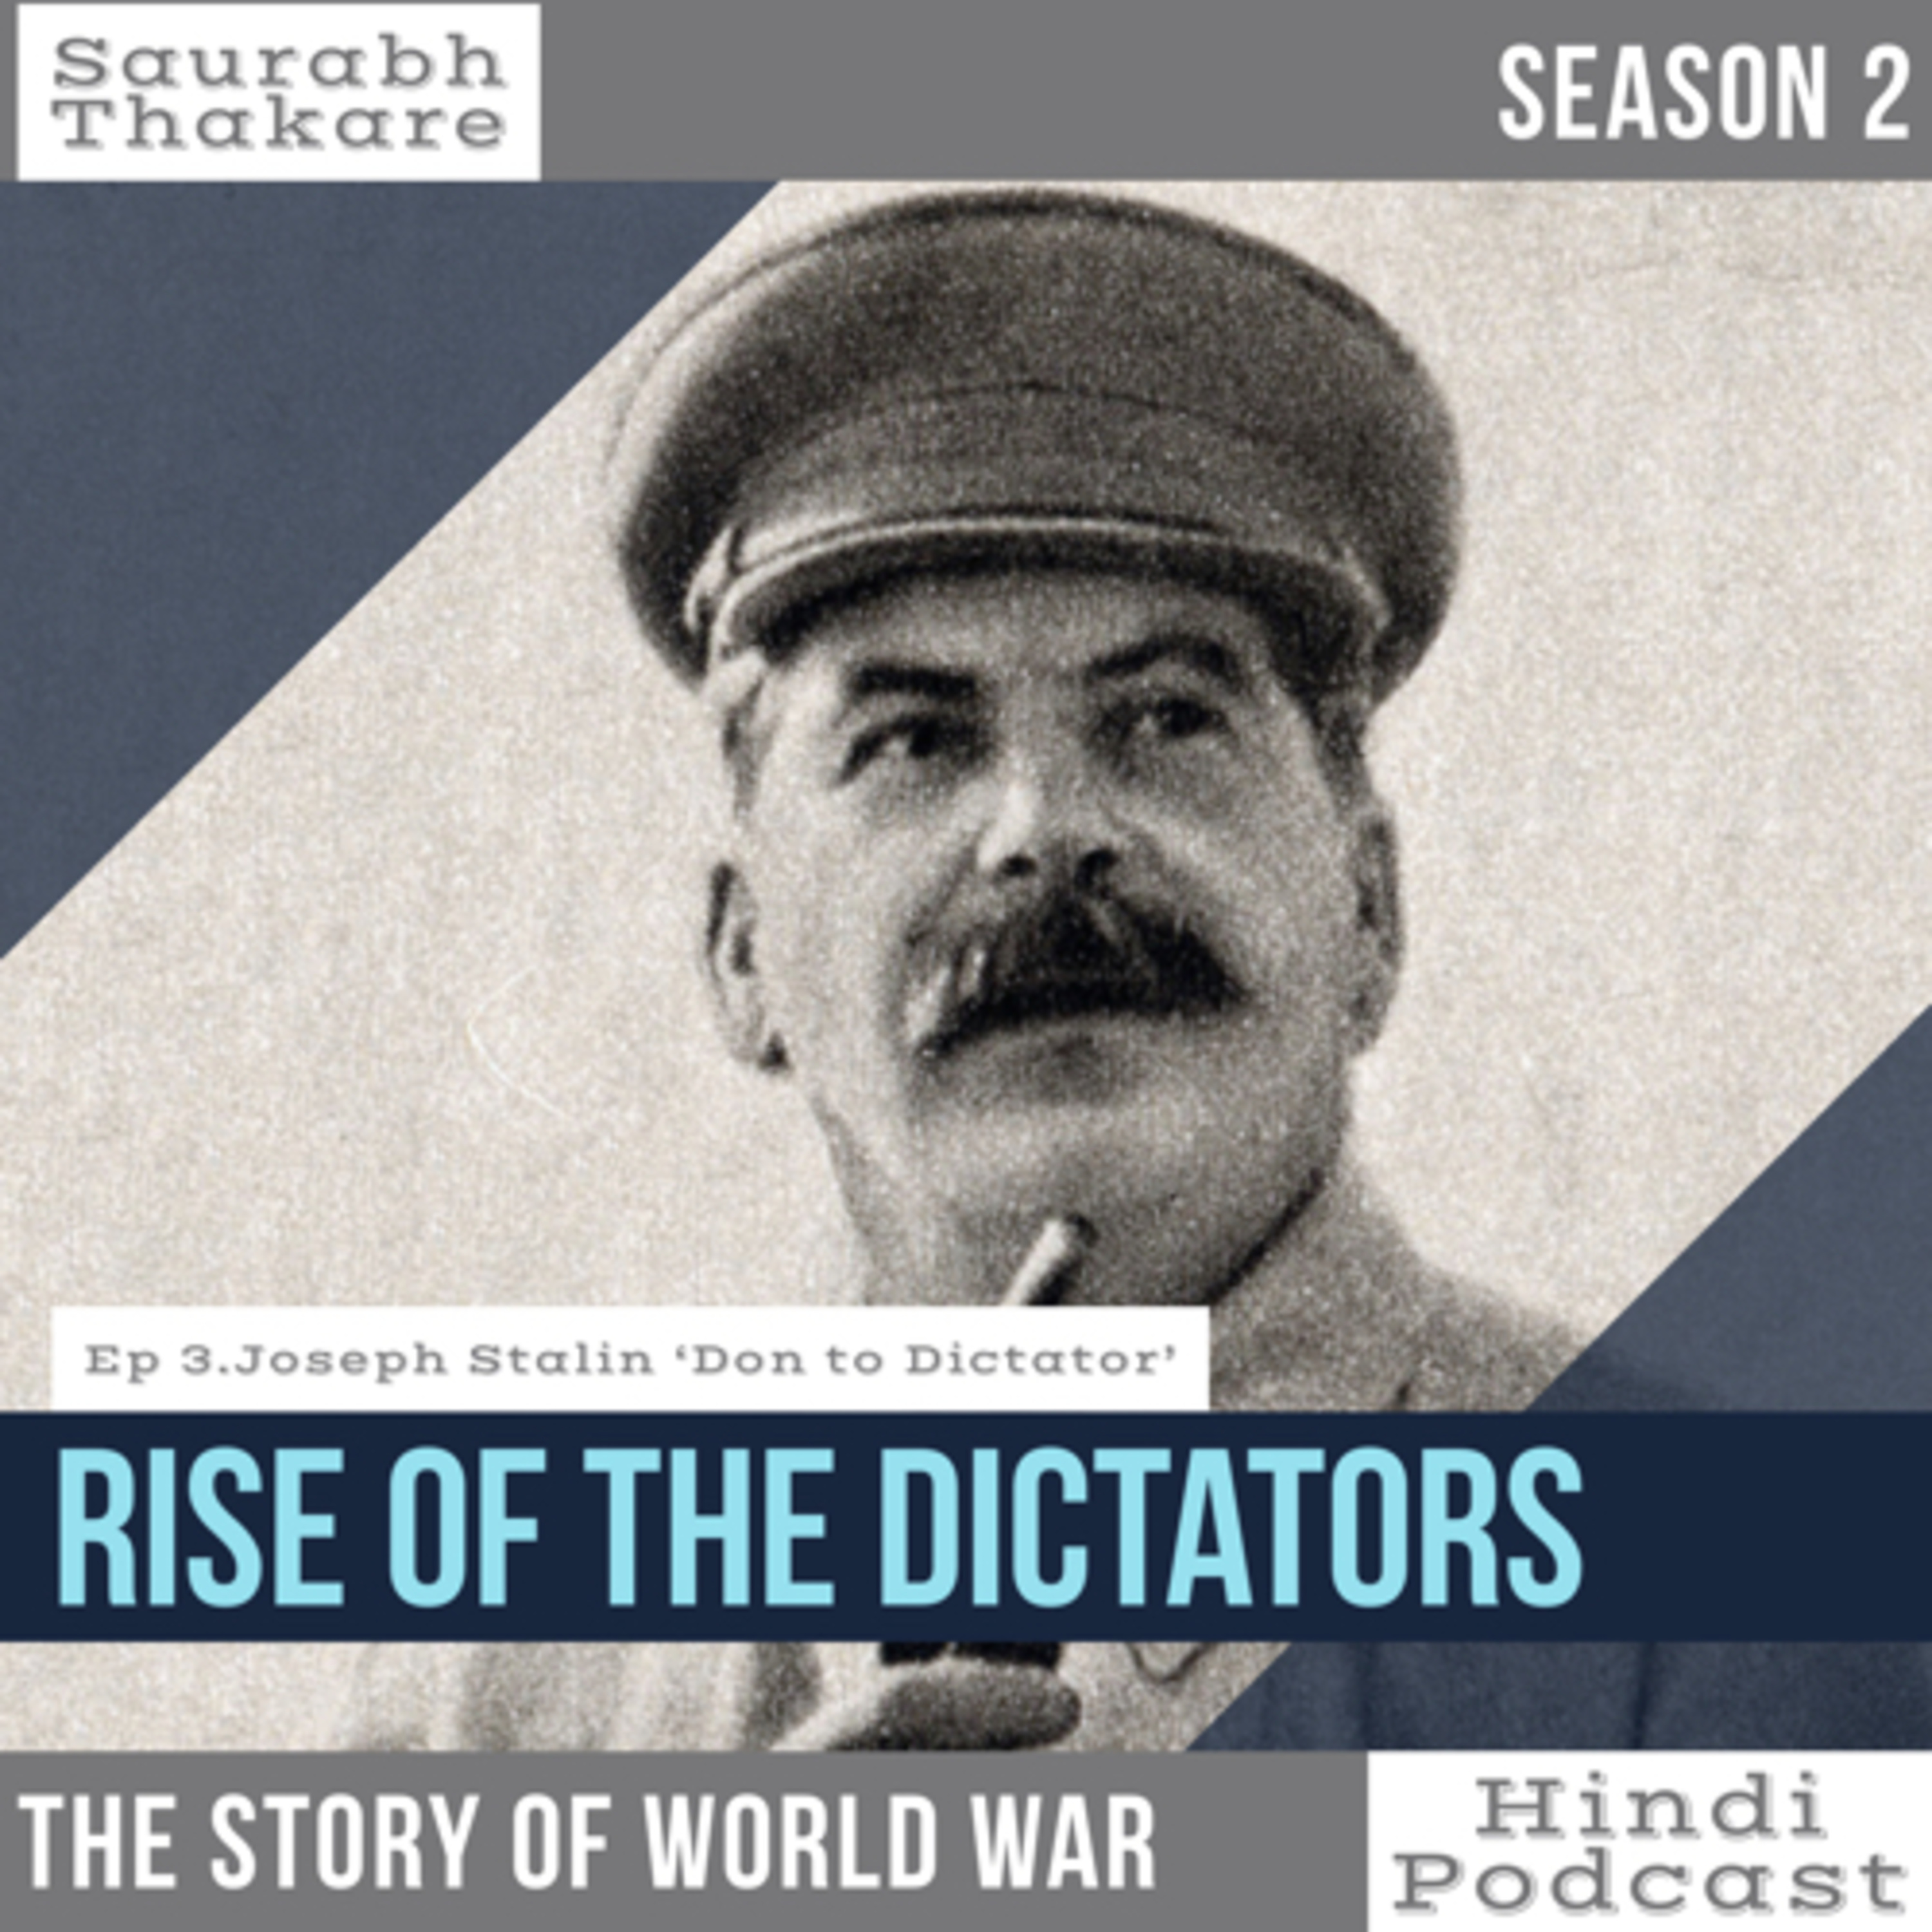 #41 RISE OF THE DICTATORS |Ep 20. Joseph Stalin (Part 2)